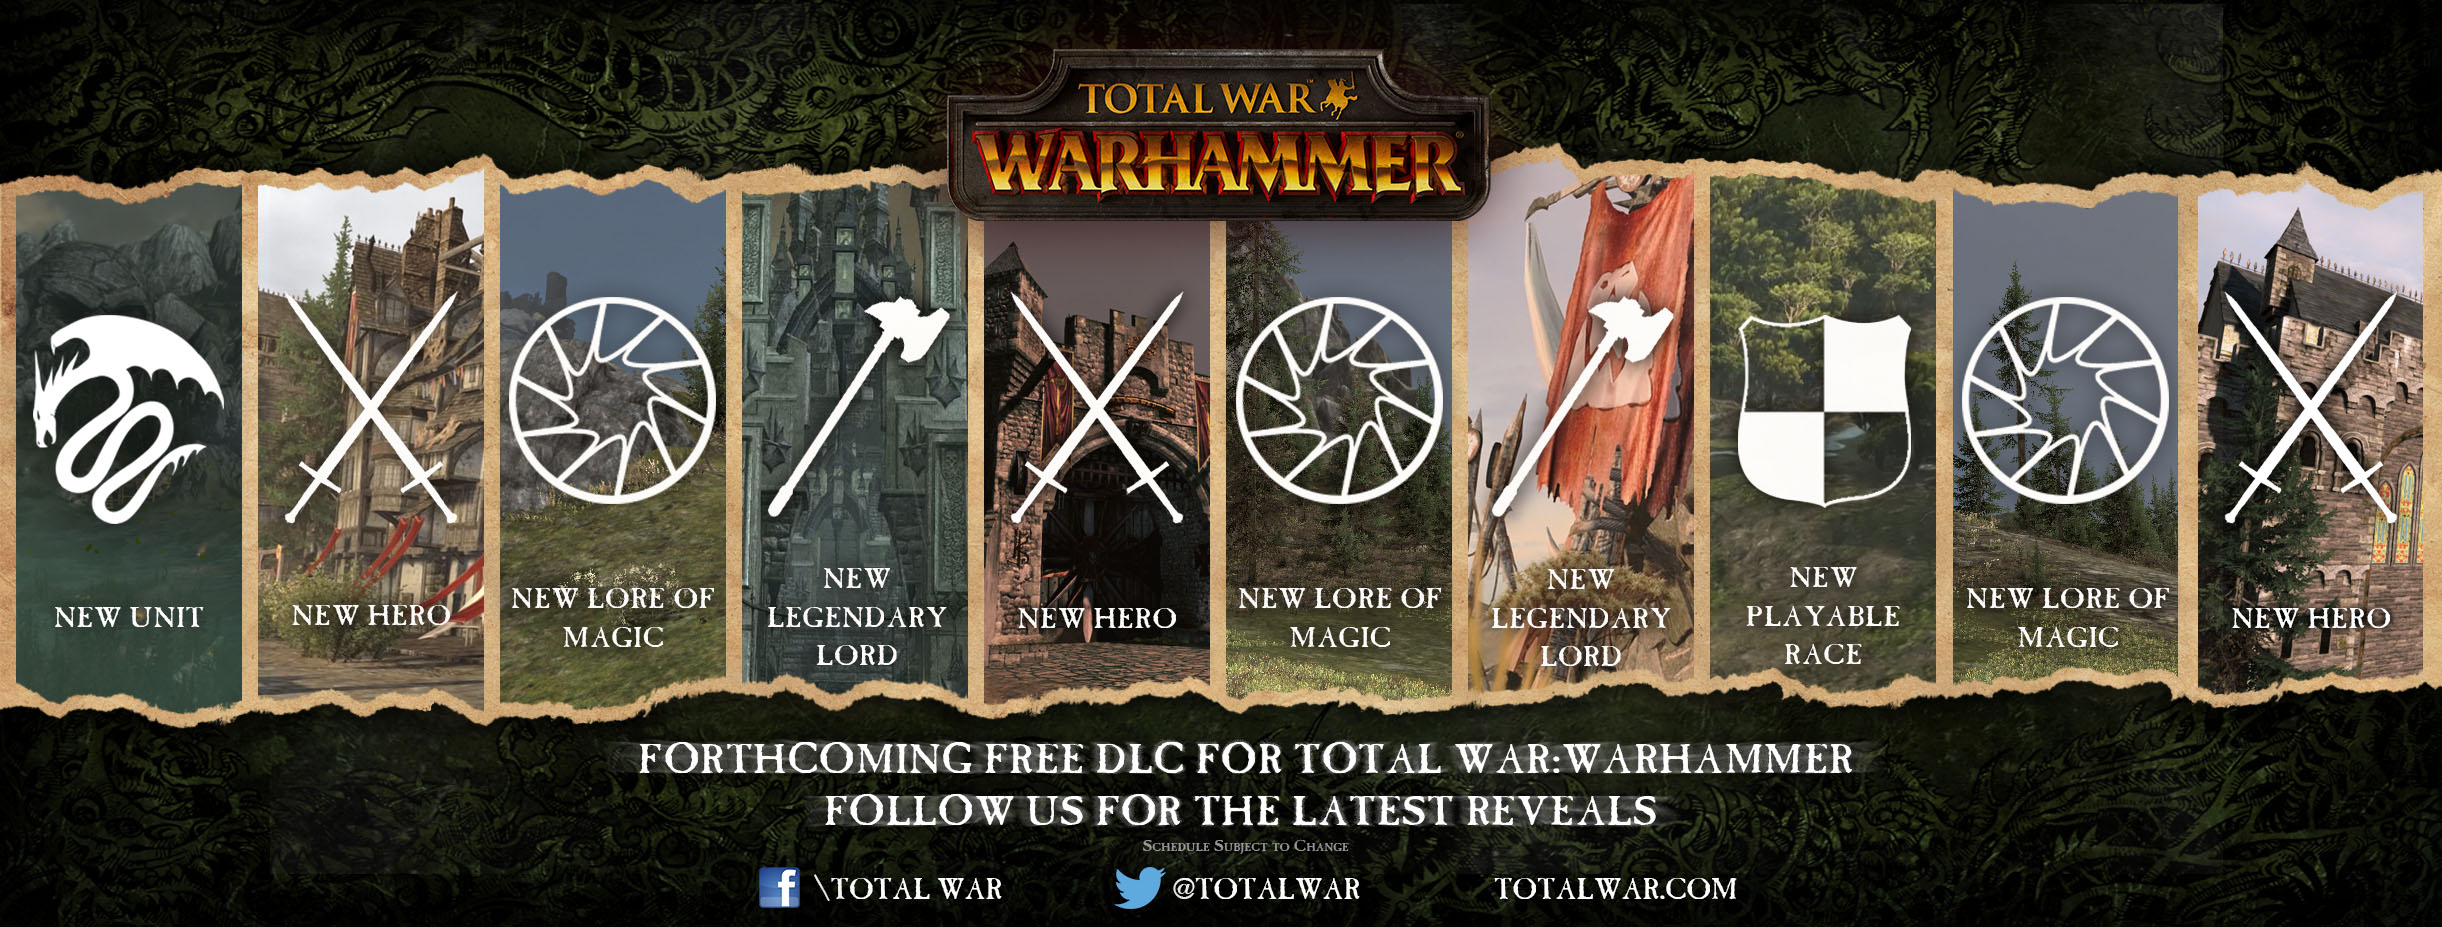 Total War: Warhammer to gain DX12 support in a new patch